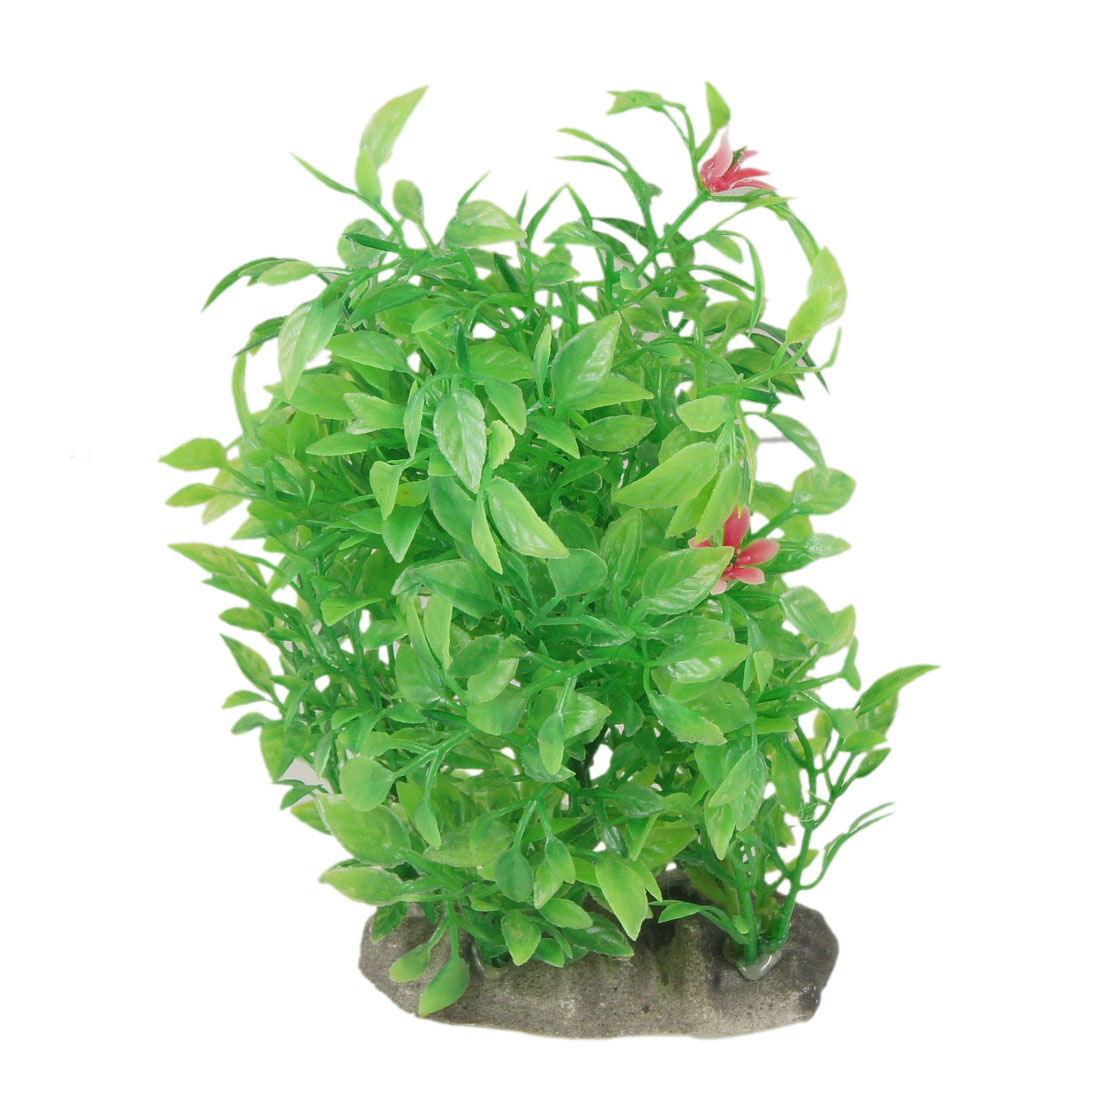 "6.3"" Height Green Manmade Water Plant for Aquarium Fish Tank"